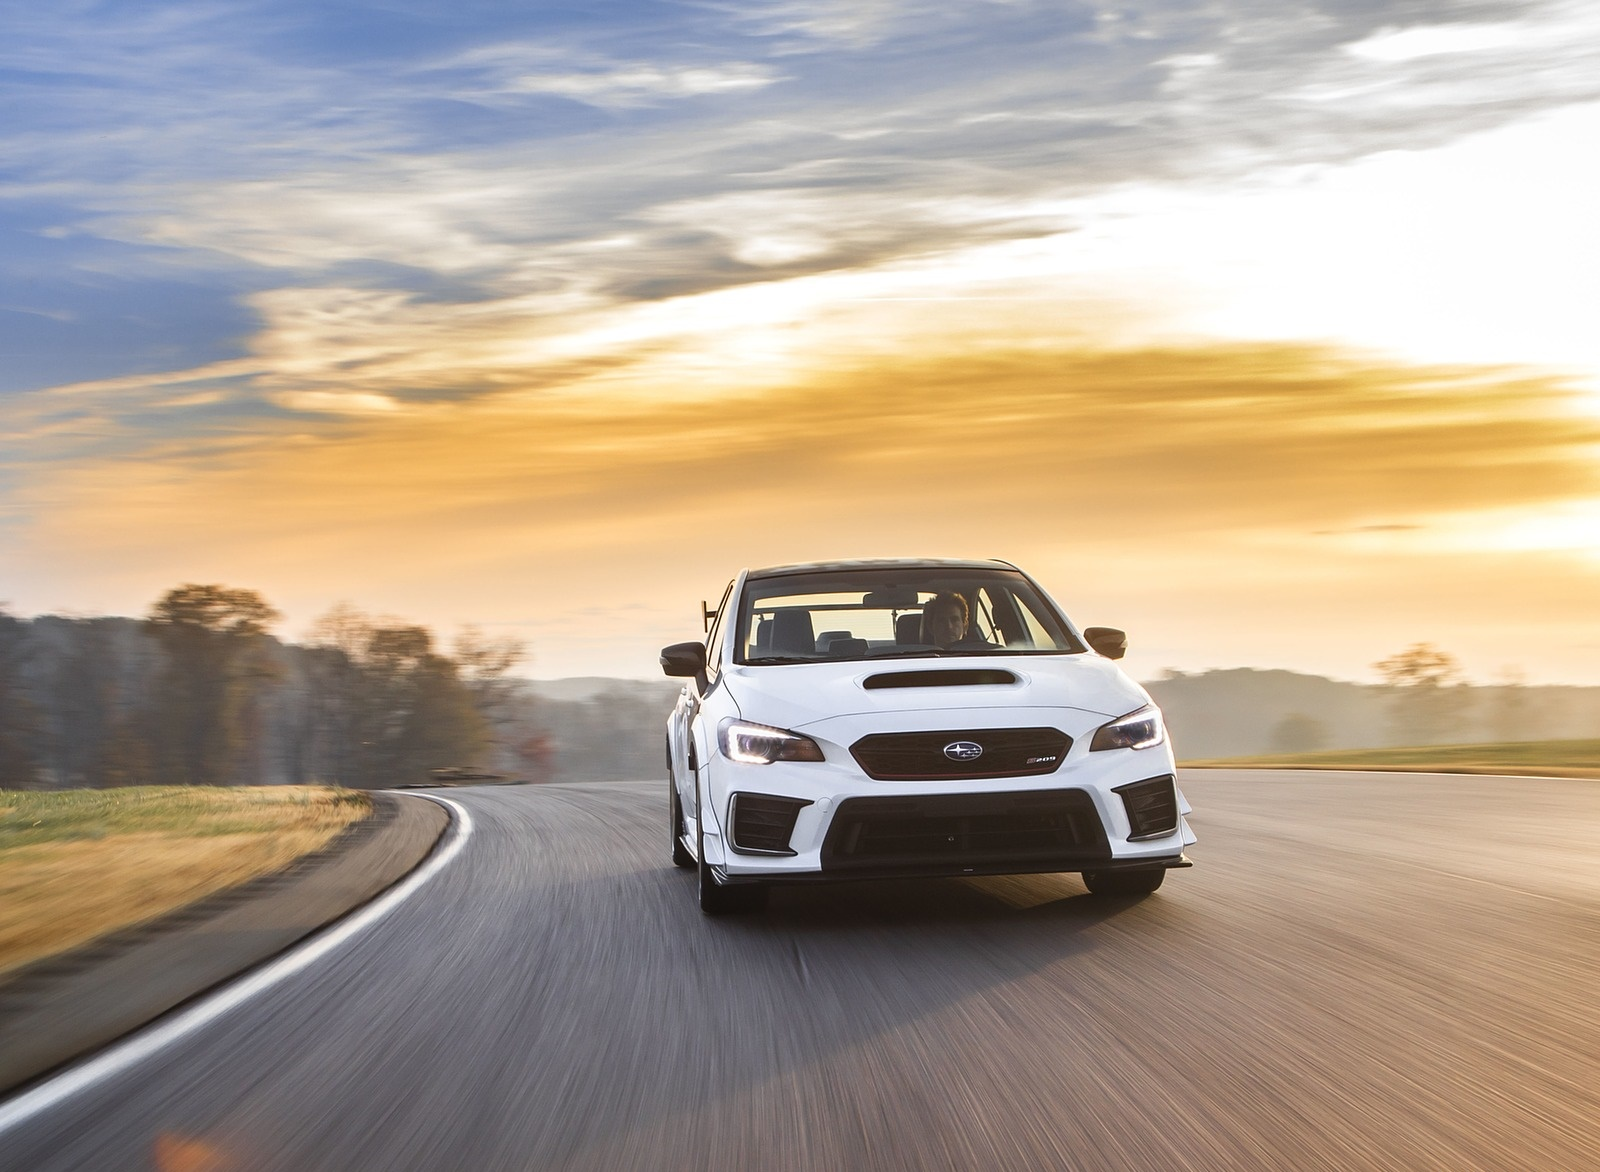 2019 Subaru WRX STI S209 Front Wallpapers (5)